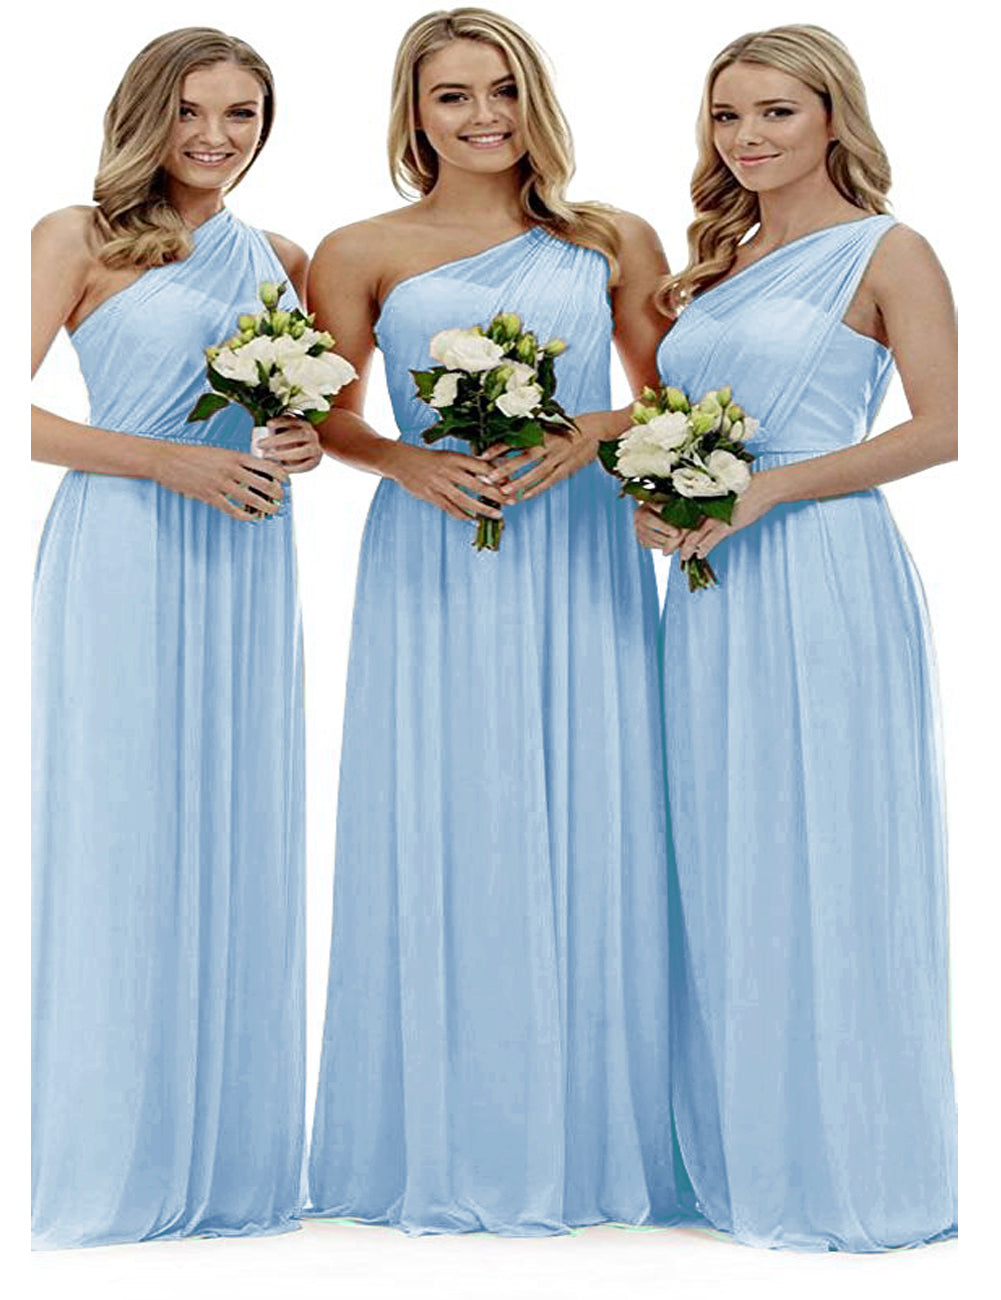 0d14e83a2c3b Coral And Navy Blue Bridesmaid Dresses - raveitsafe